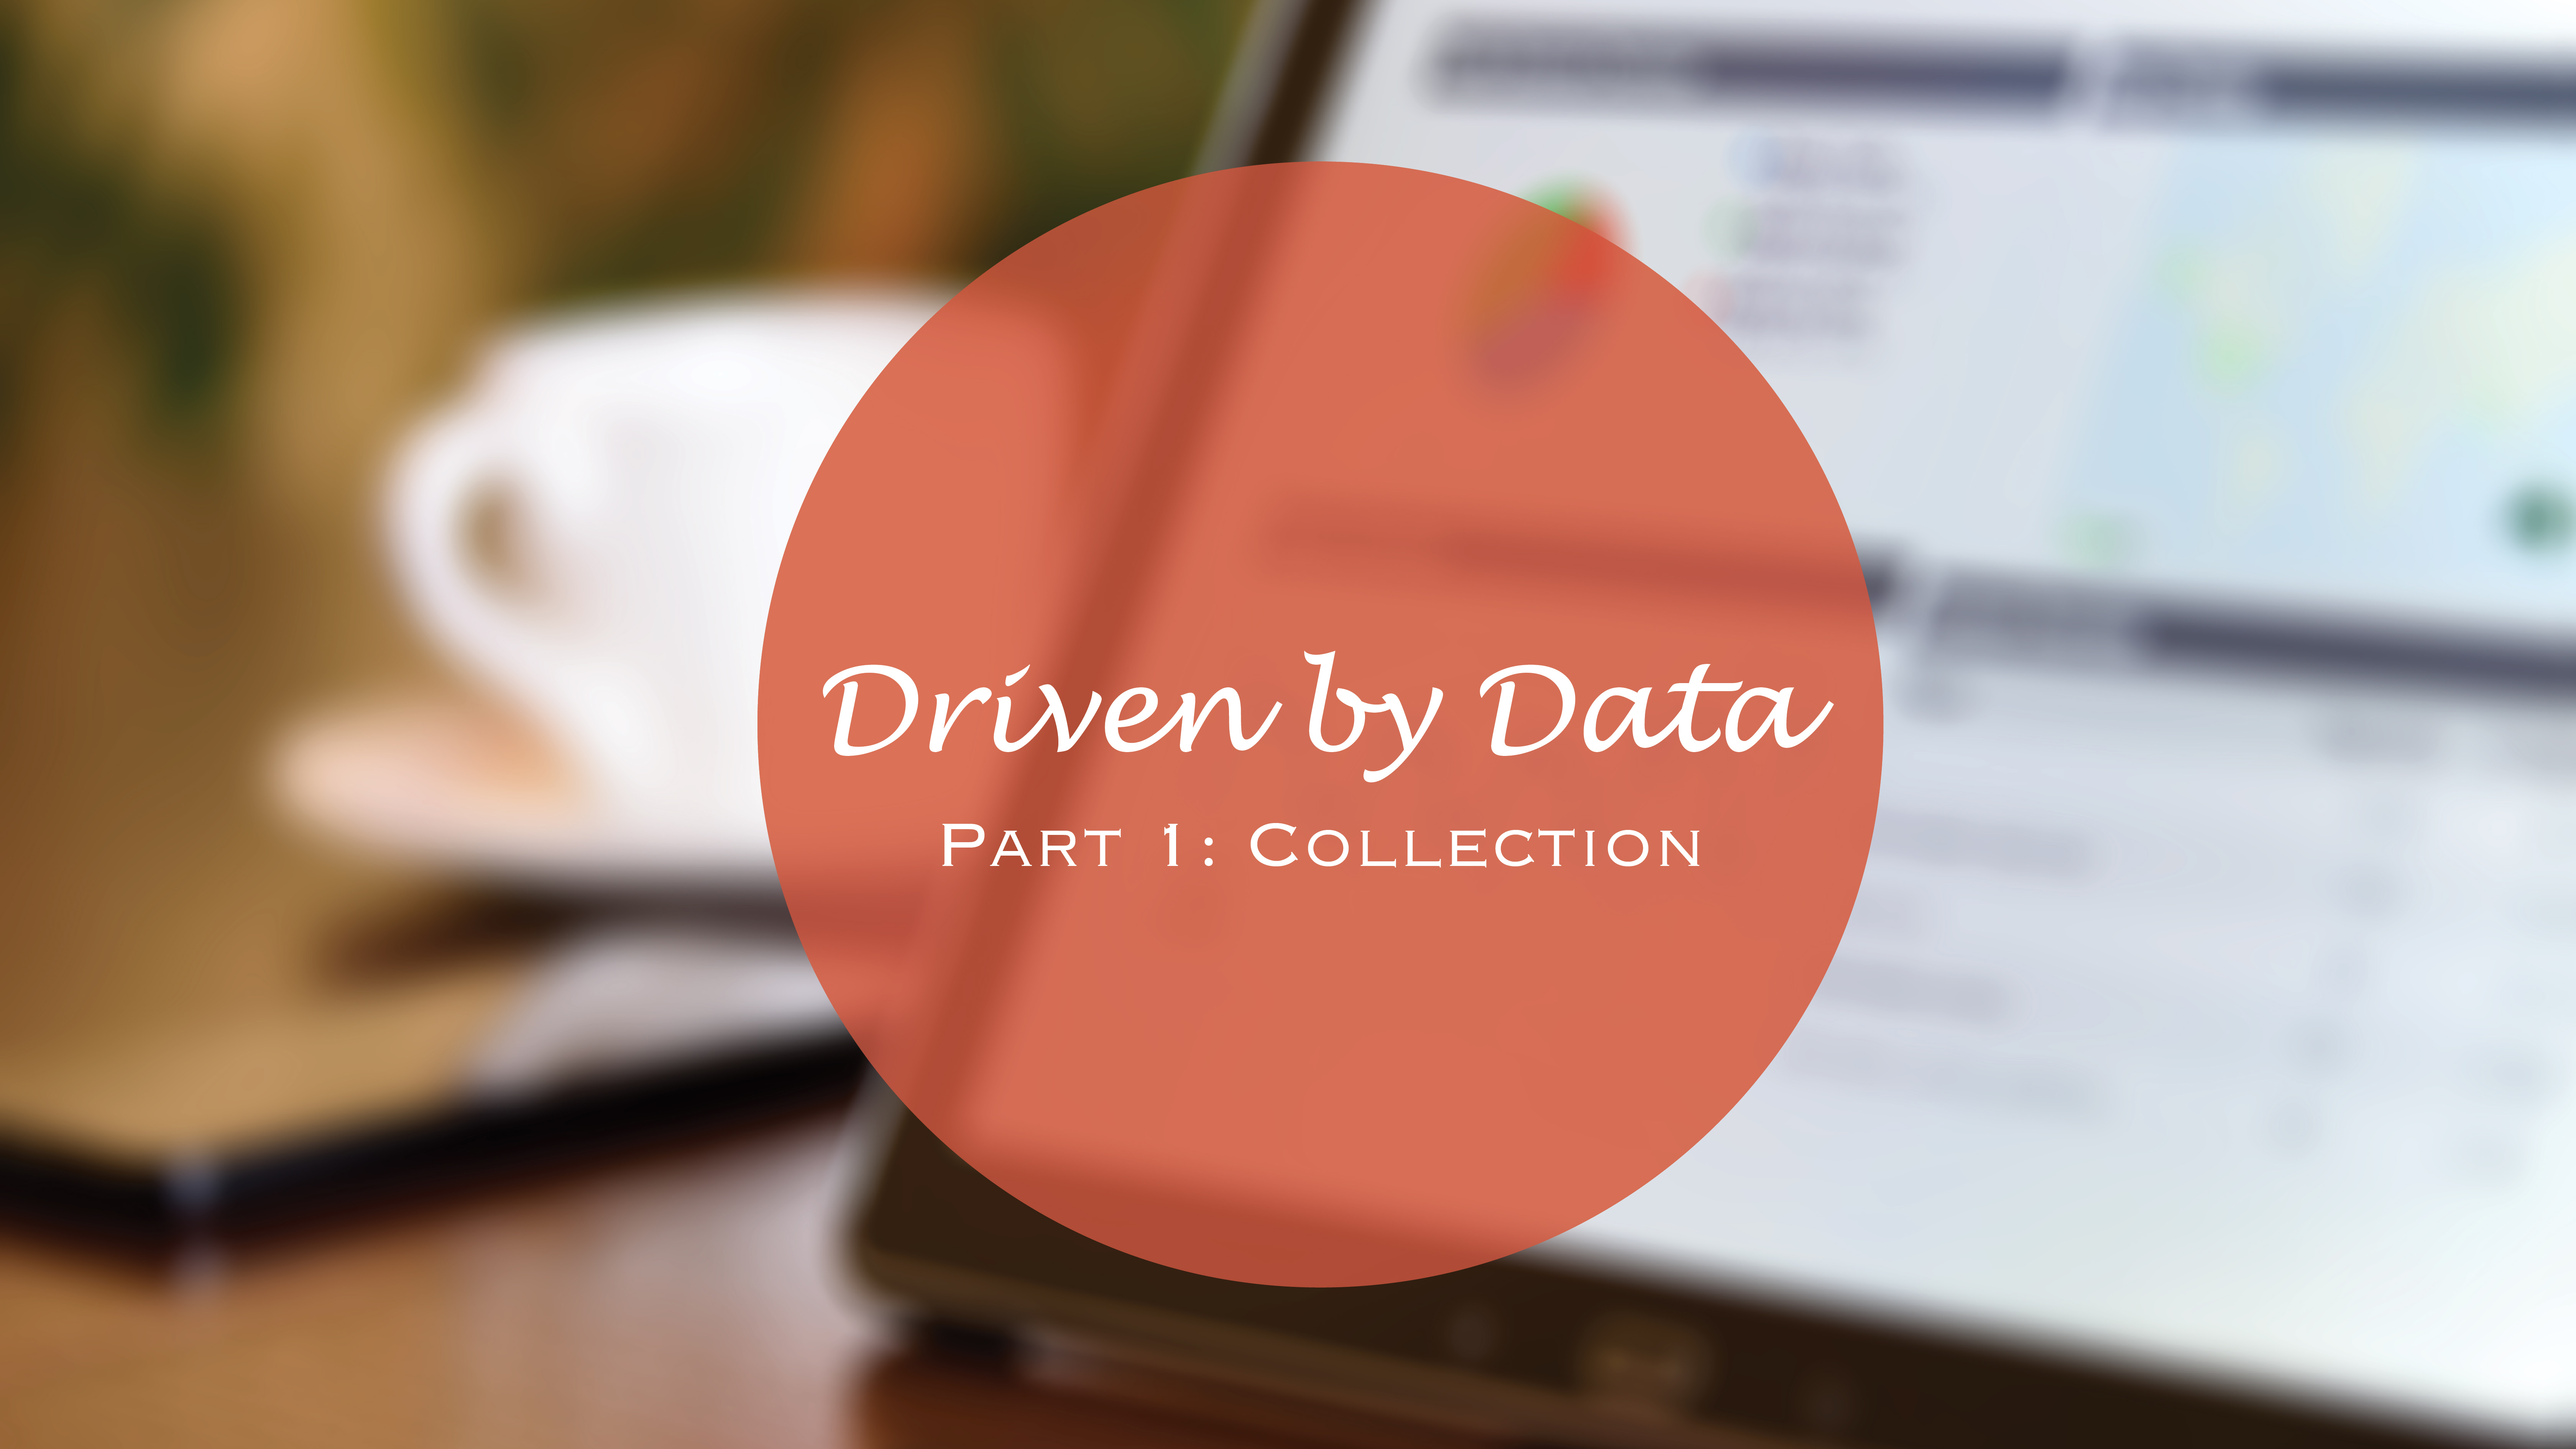 driven by data